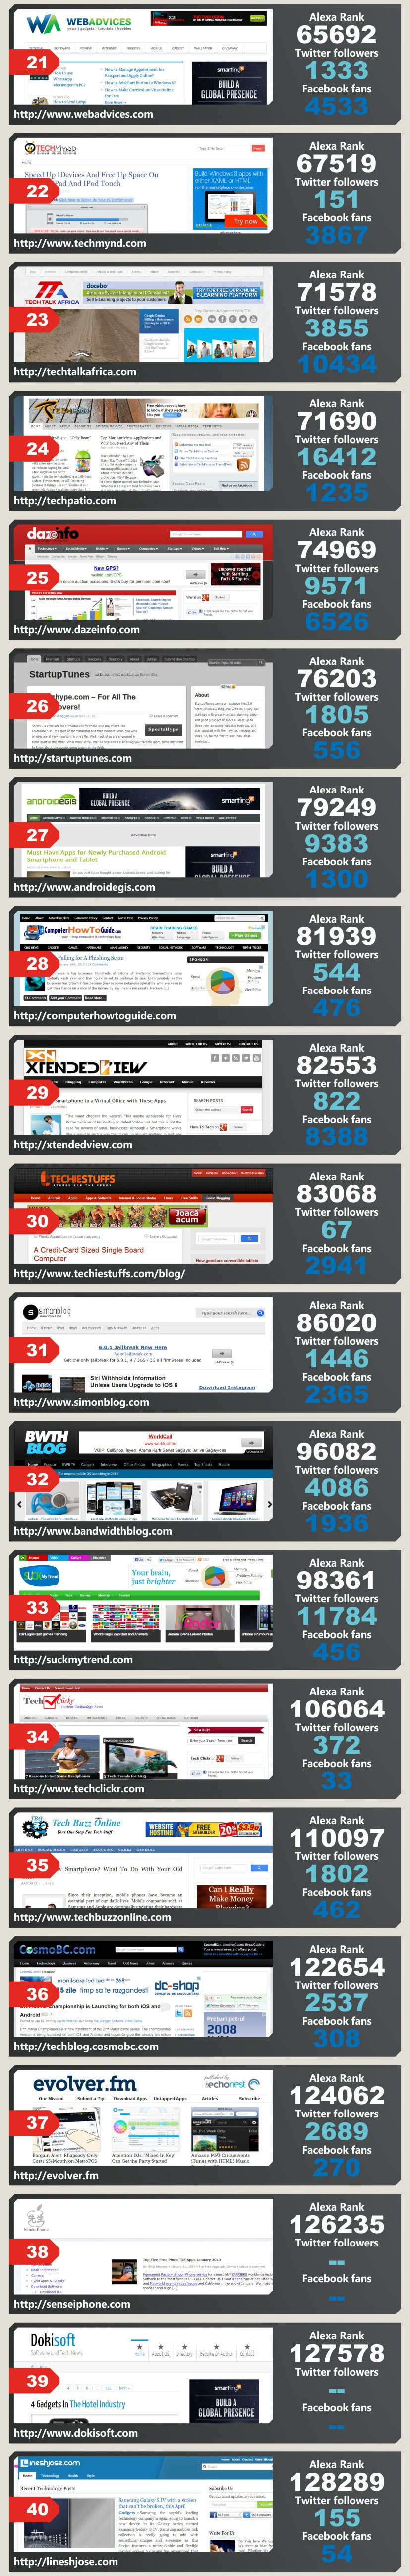 top-technology-blogs-2013